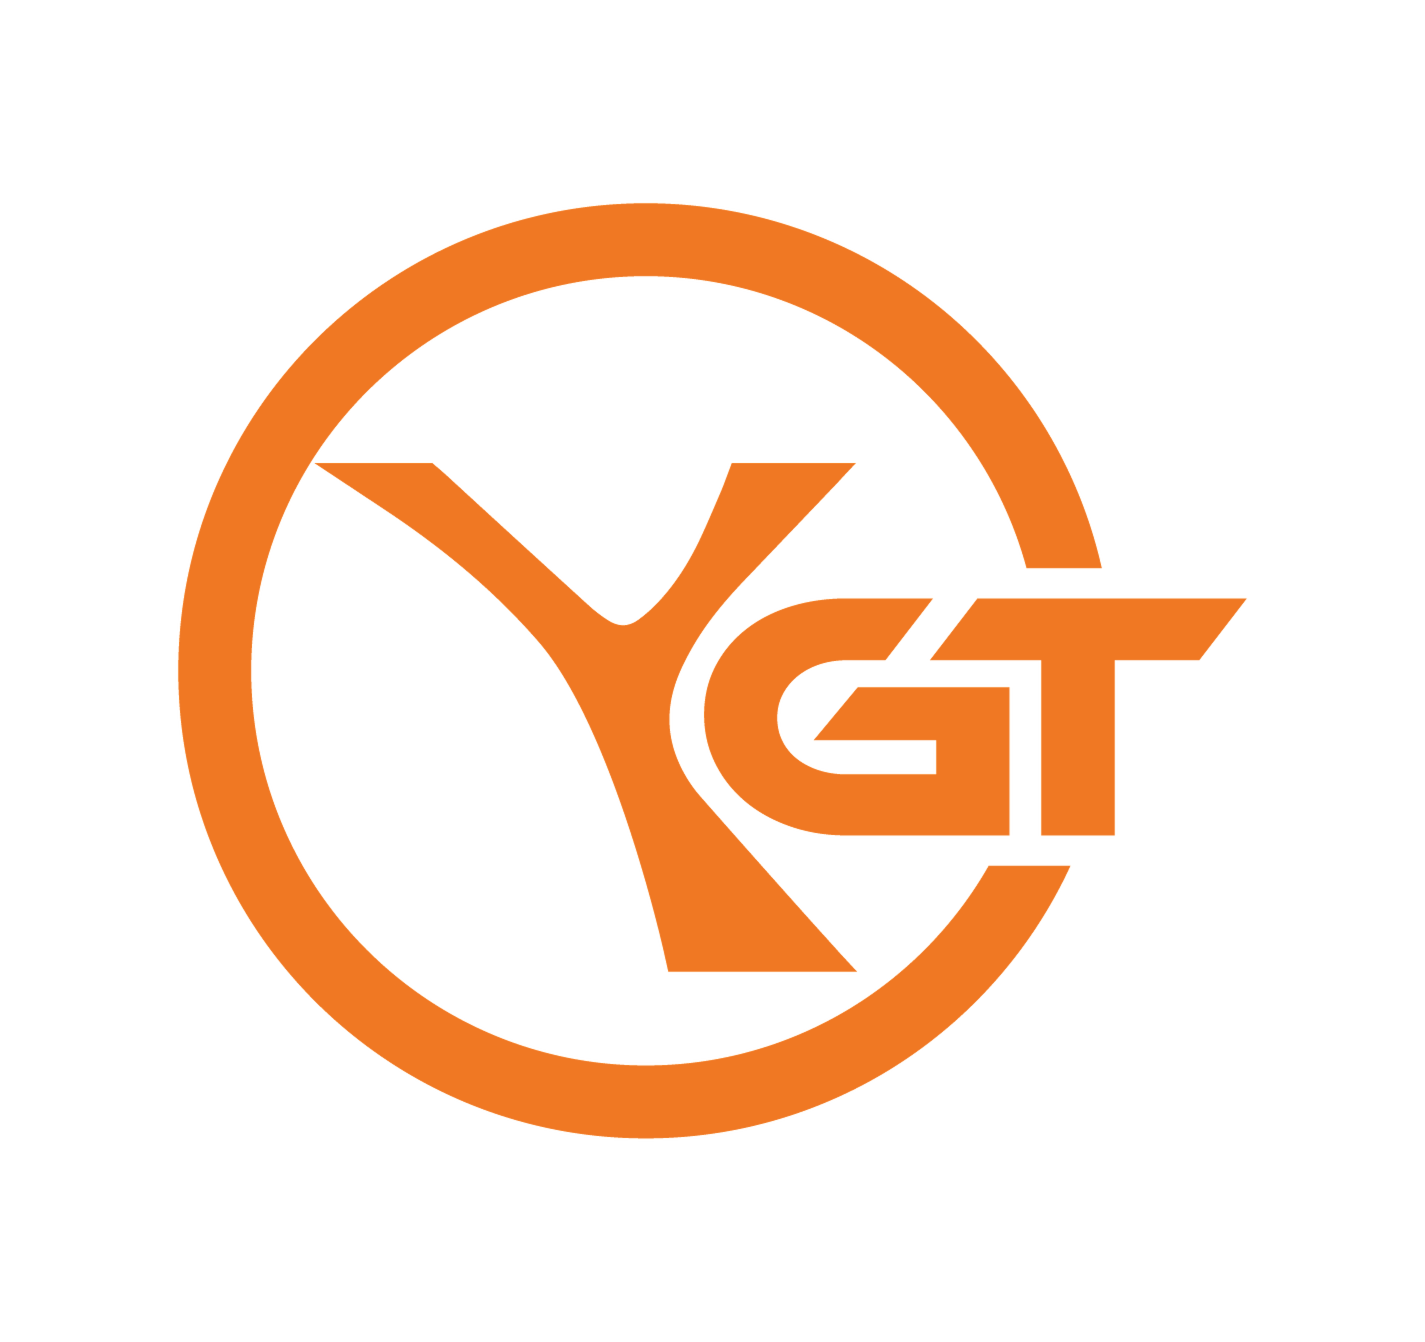 YsecIT Gaming Technologies (YGT)